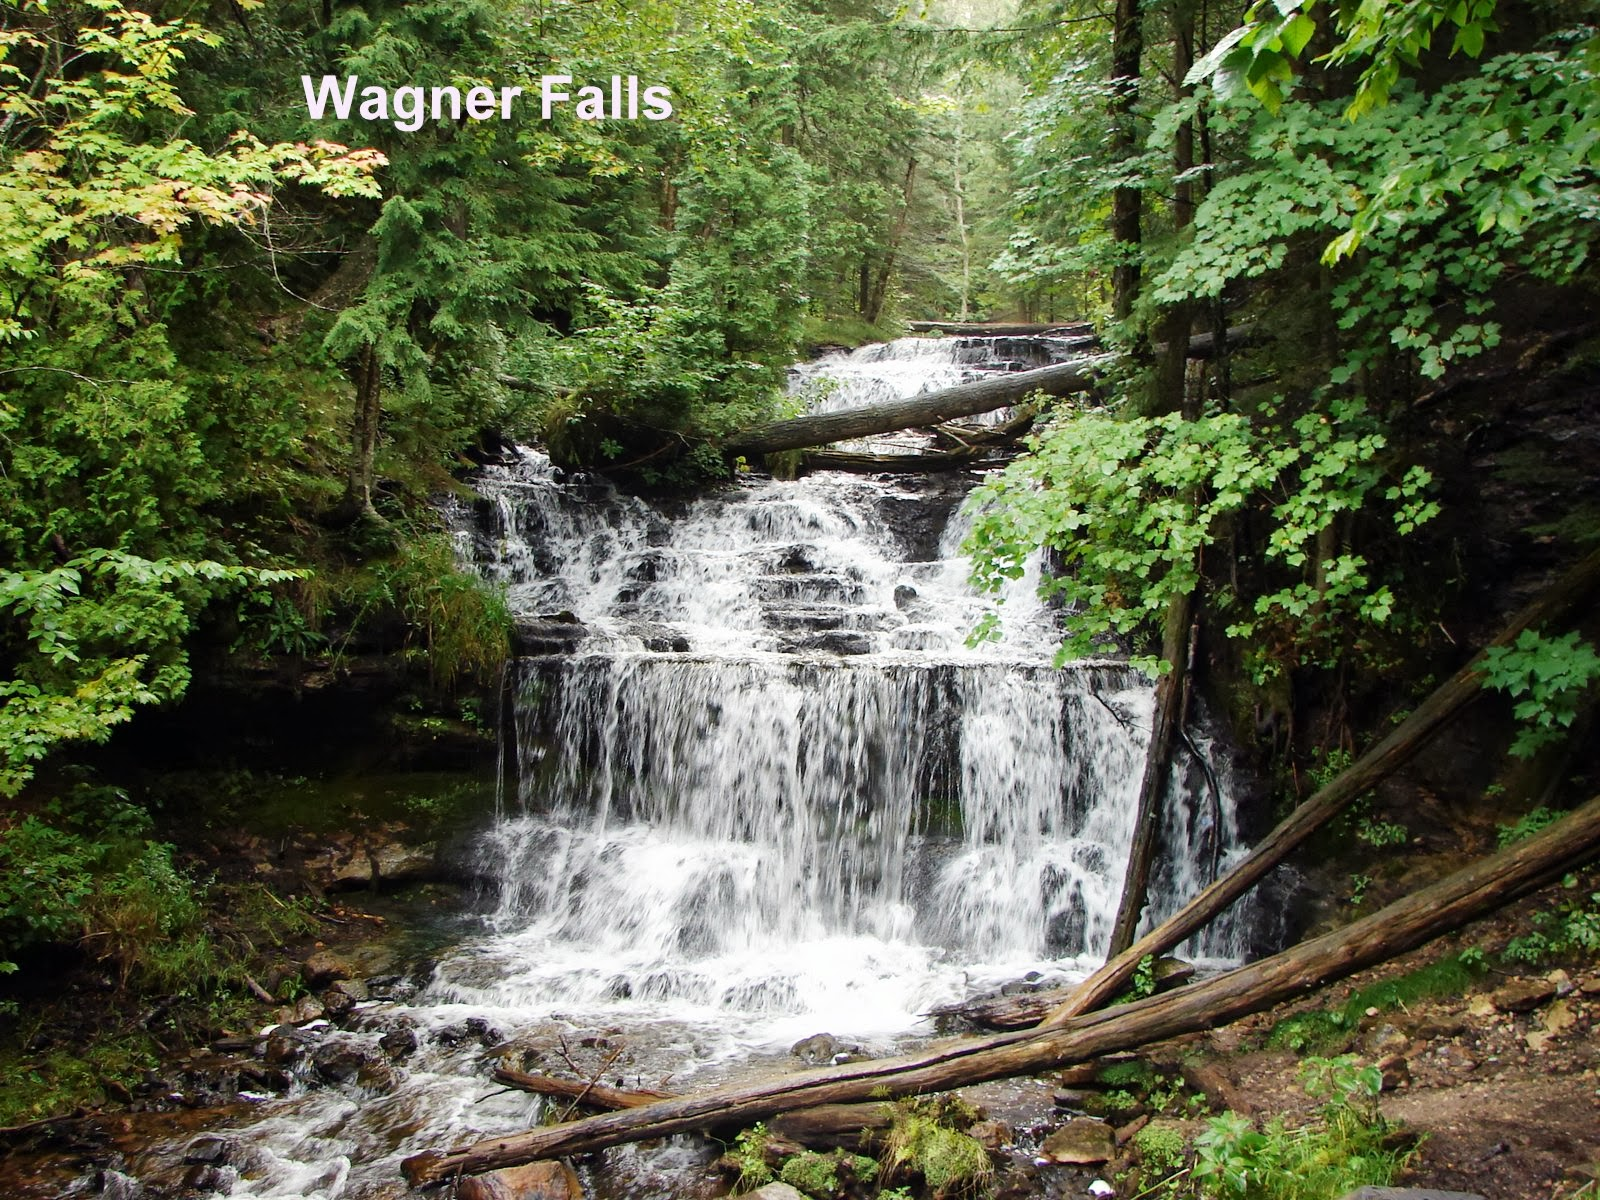 Michigan alger county munising - Then We Saw Alger Falls Just Roadside So It Was The Quick Take The Picture While Waiting At The Stop Sign Photo Opportunity